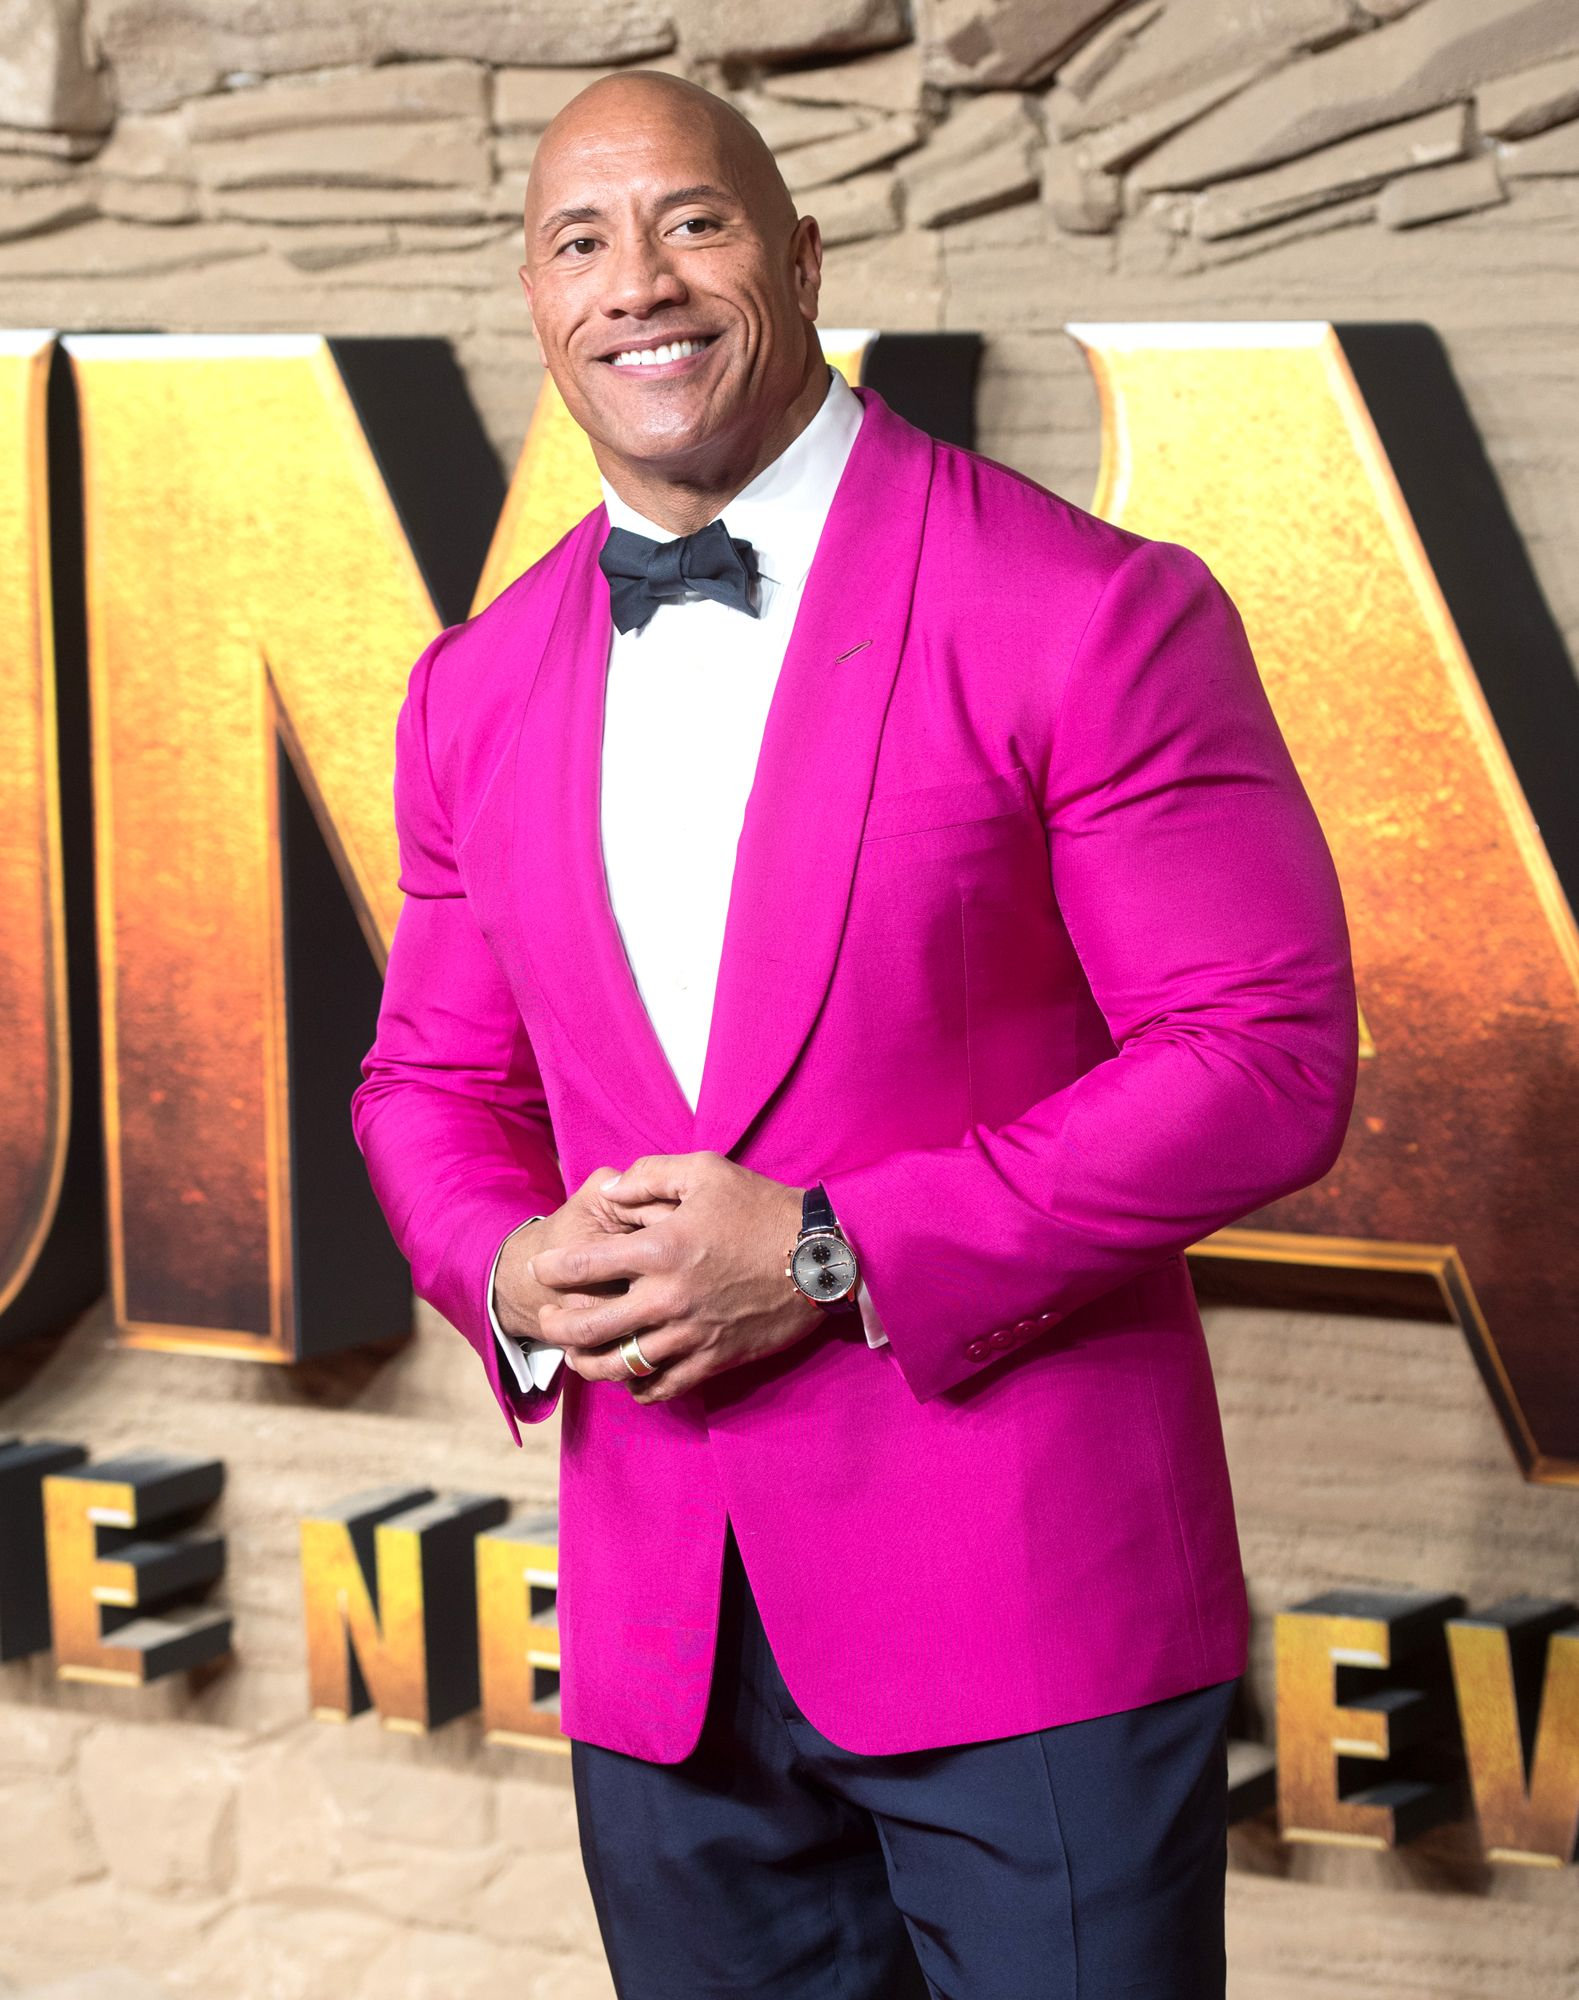 Dwayne Johnson doesn't mind if you want to call him The Rock